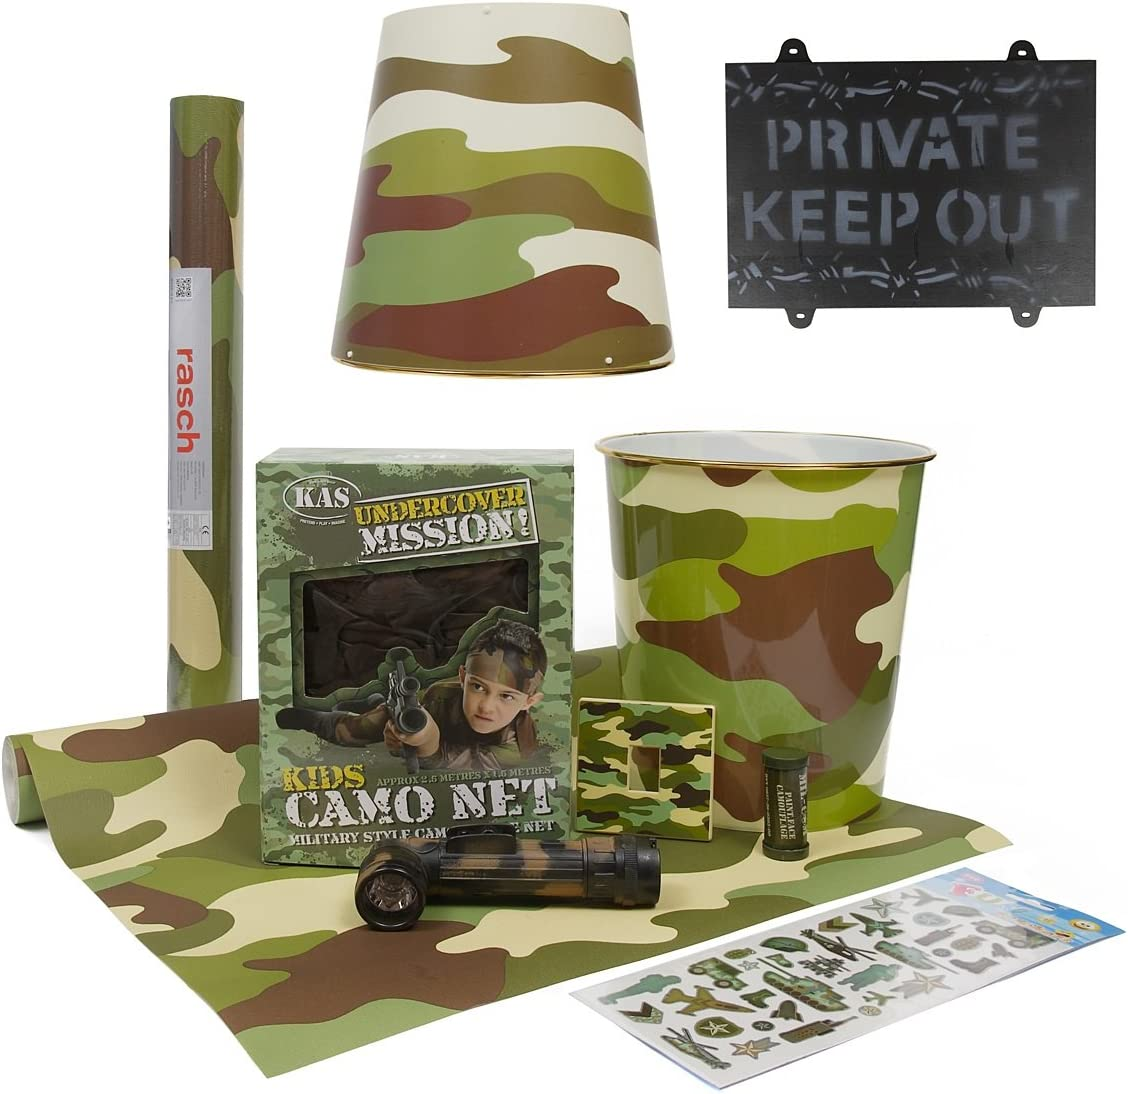 Kids Army Bedroom 10pcs Accessories Kit Includes Camo Wallpaper Army Camouflage Bedroom Ideas By Kas Amazon Ca Home